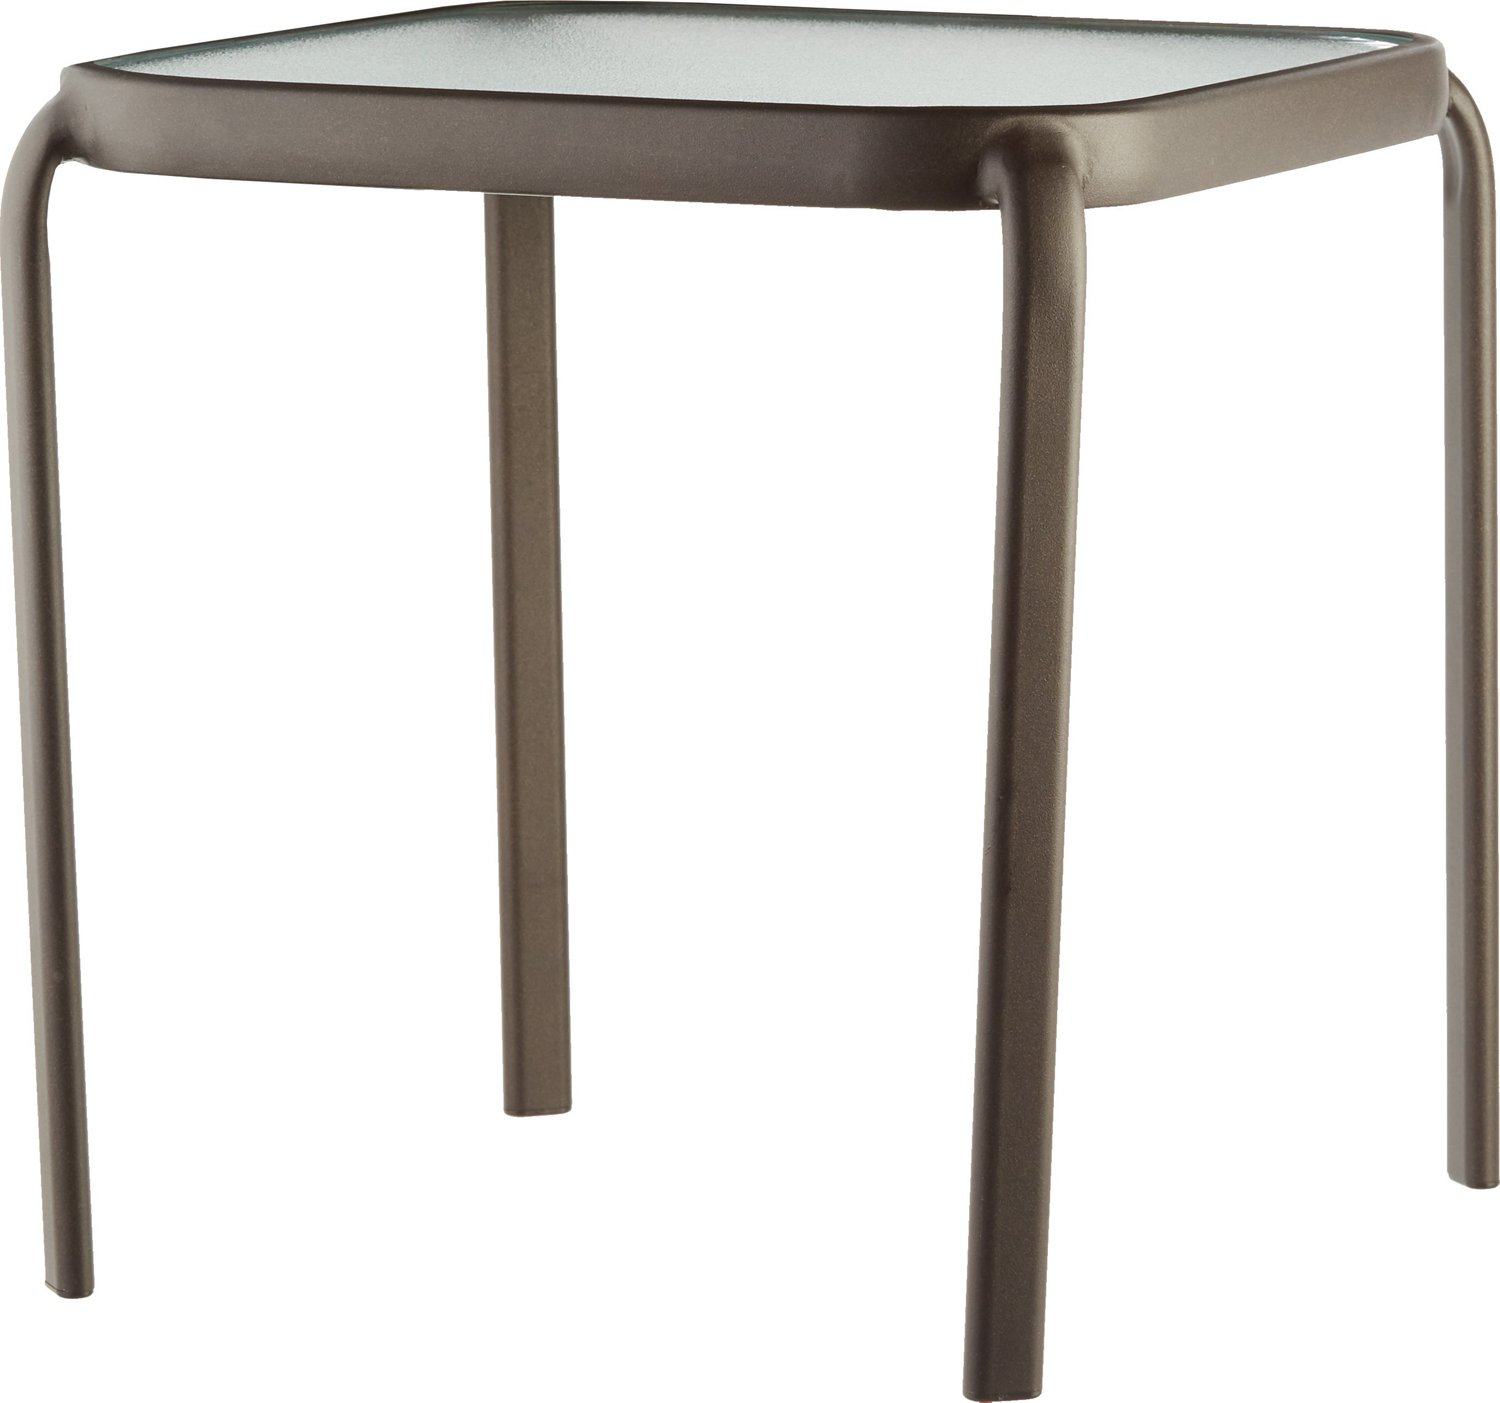 patio furniture academy mosaic accent table outdoor display product reviews for side home decor ping sites pottery barn glass top coffee vintage mid century chairs contemporary